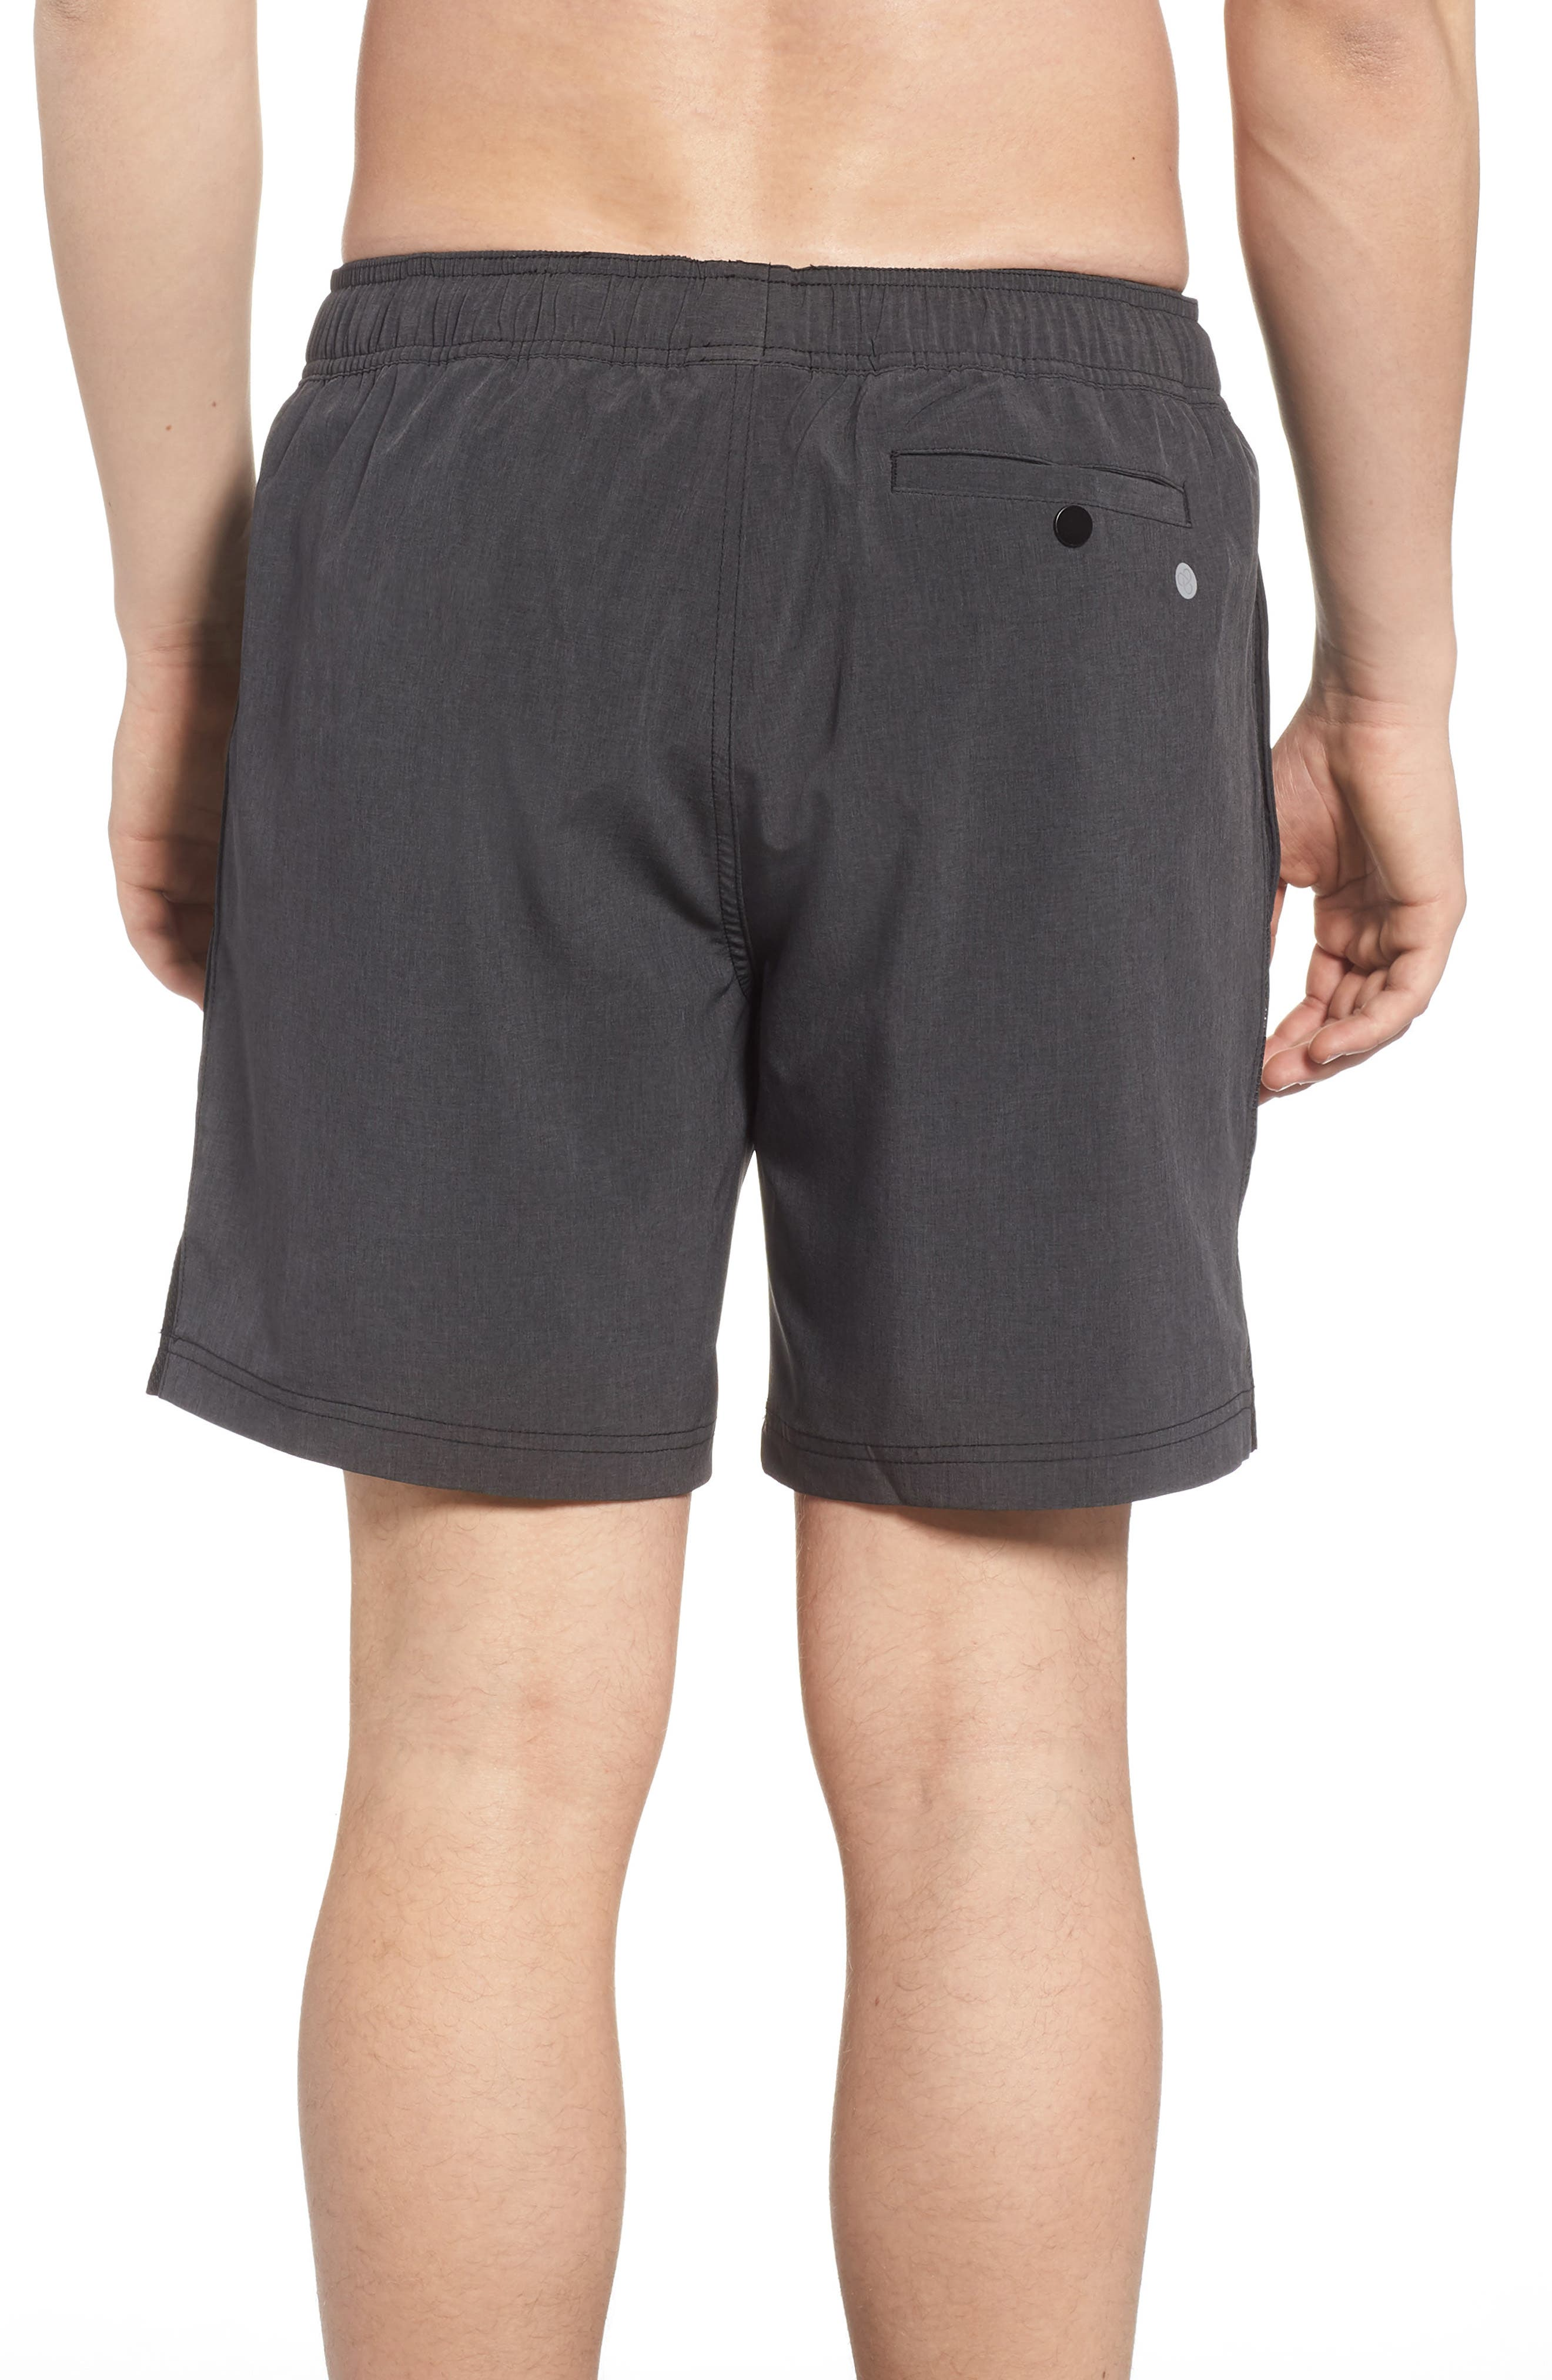 Stretch Swim Trunks,                             Alternate thumbnail 2, color,                             Black Oxide Heather